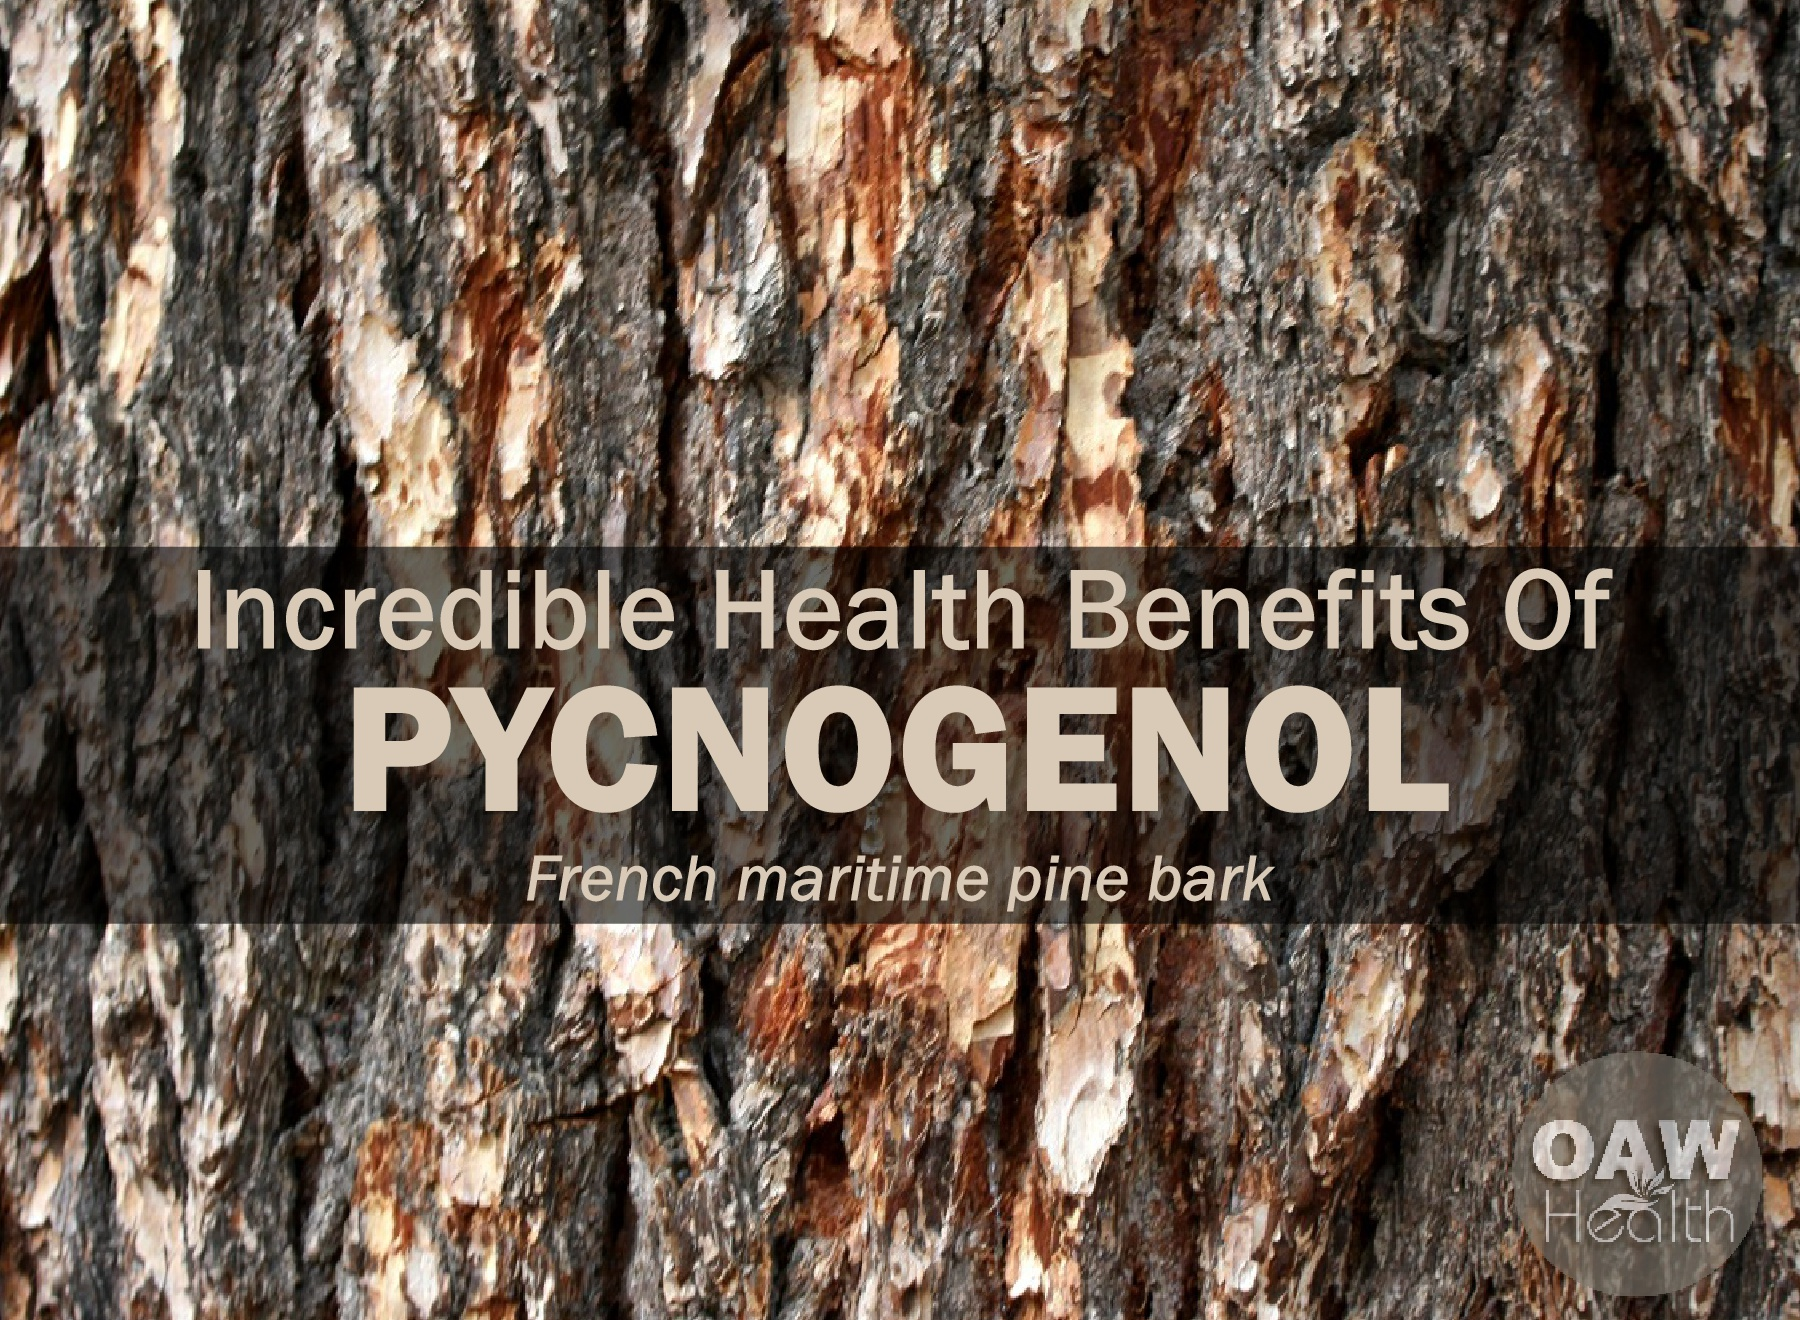 Pycnogenol – Incredible Health Benefits